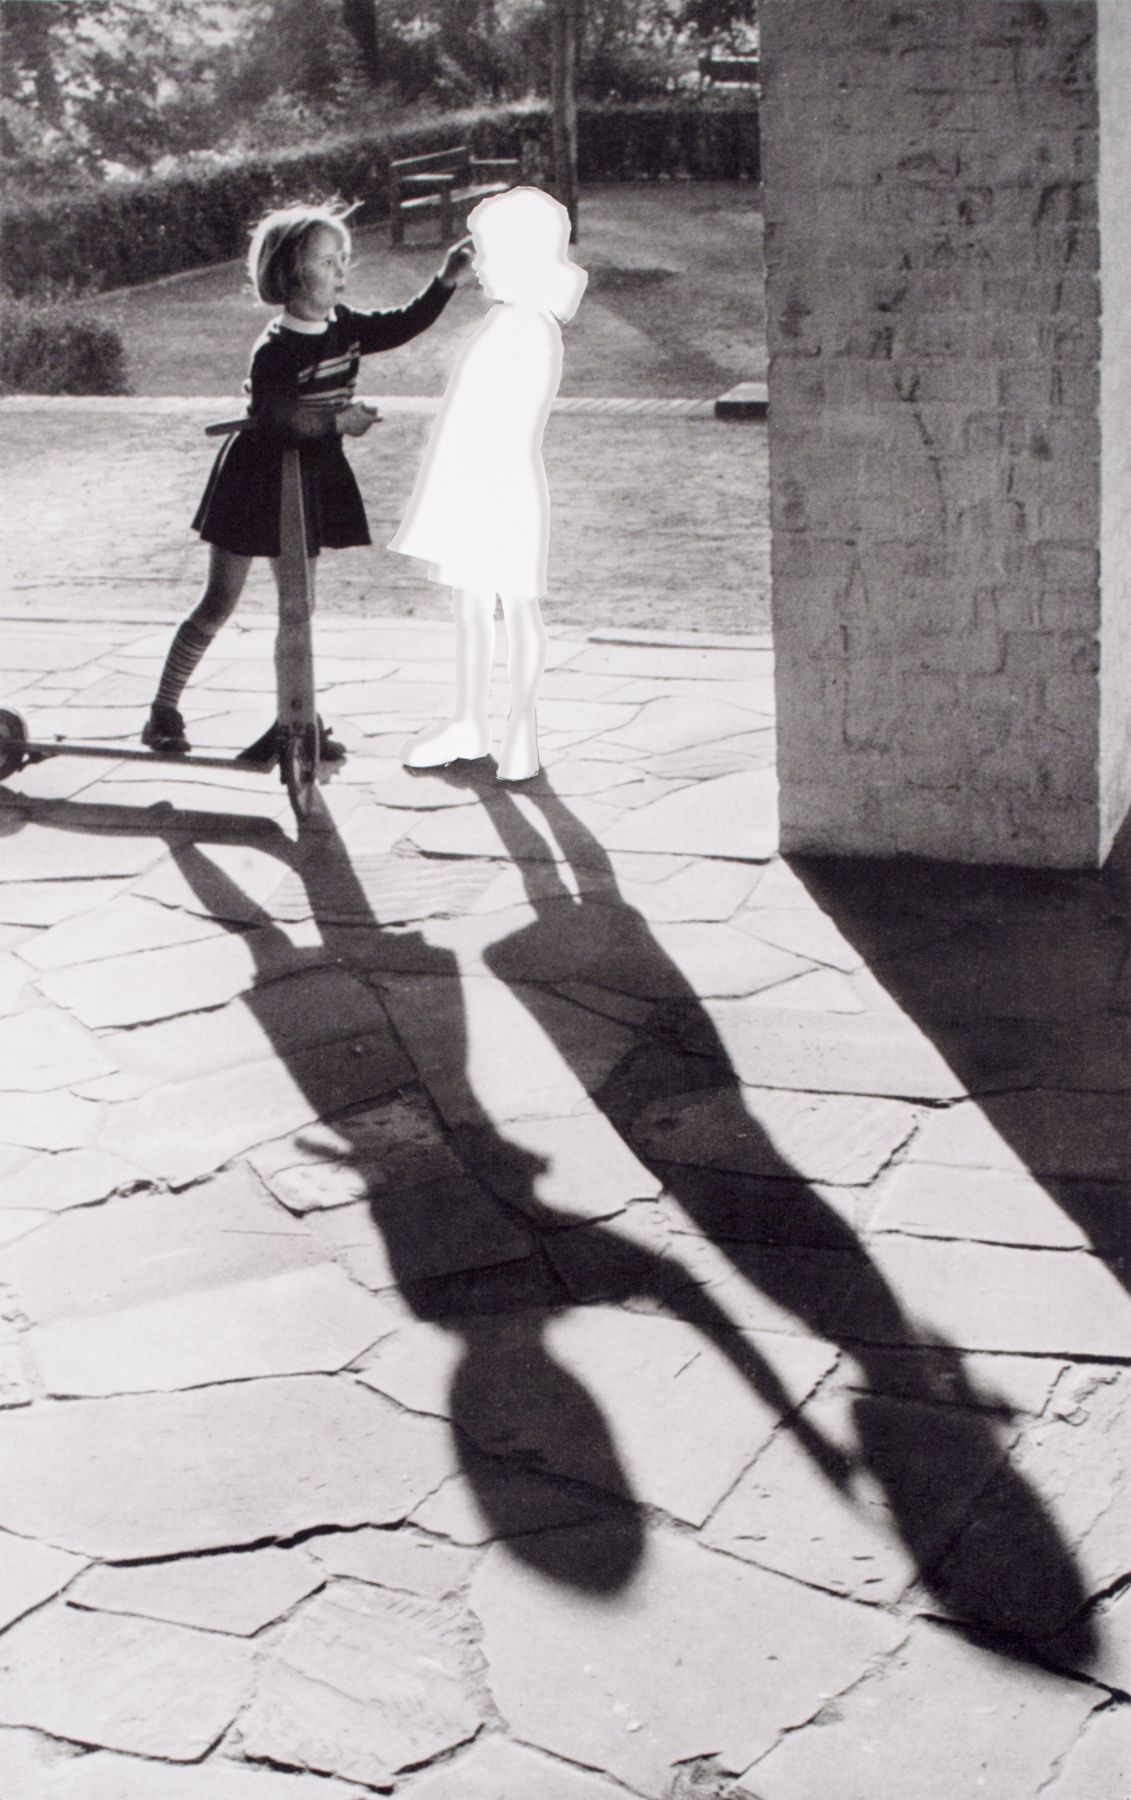 Hans-Peter Feldmann, Two Girls with Shadow, 2004, Silver gelatin print